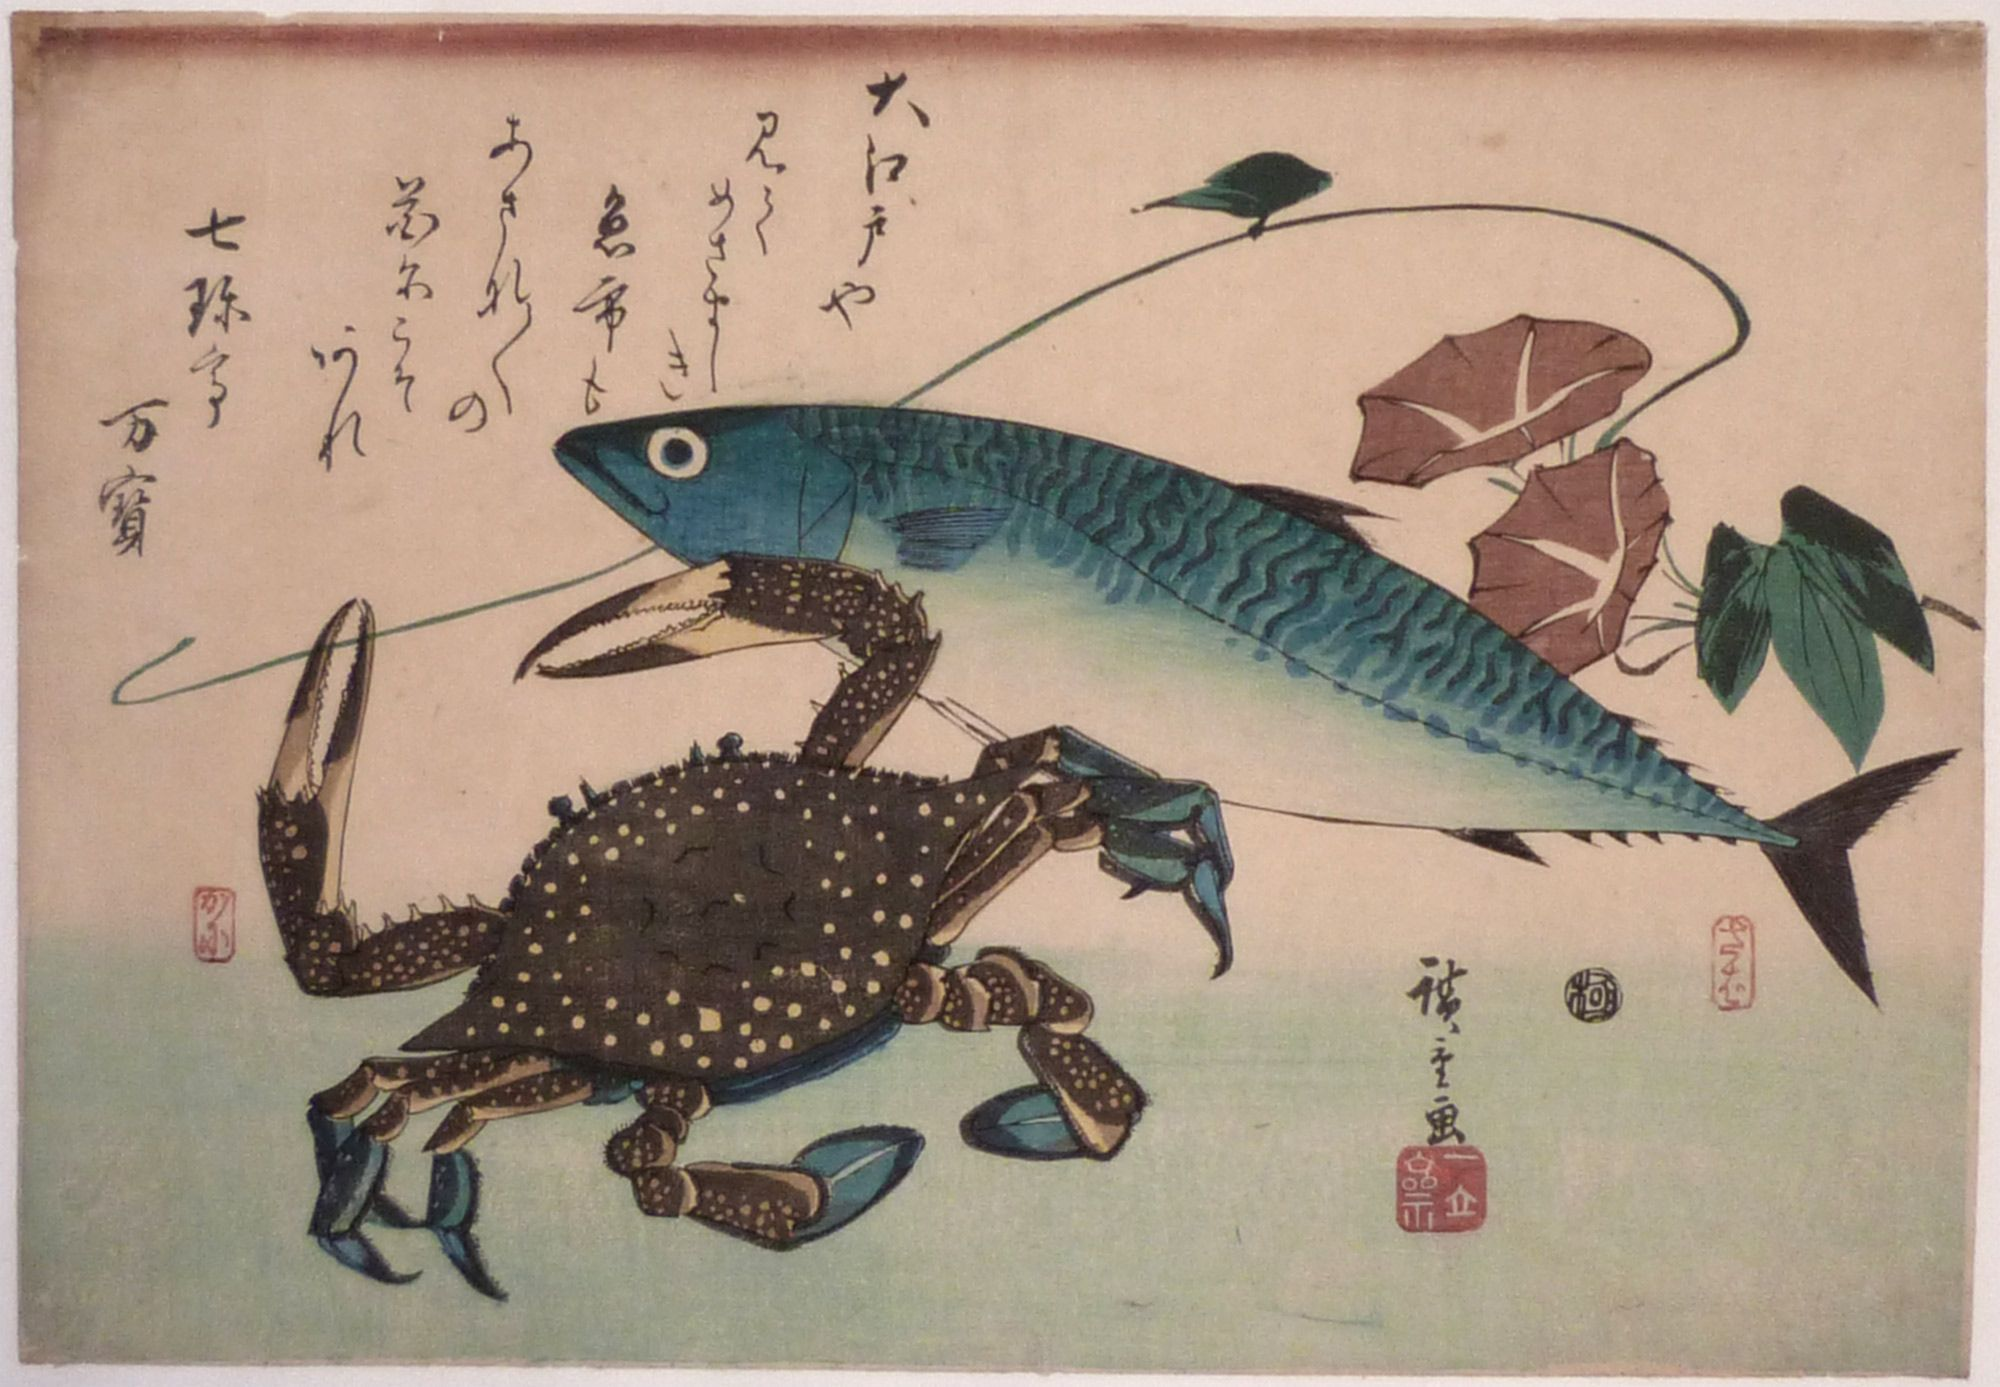 Shrimp and Lobster Fine Art Print Hiroshige Fish Japanese Art